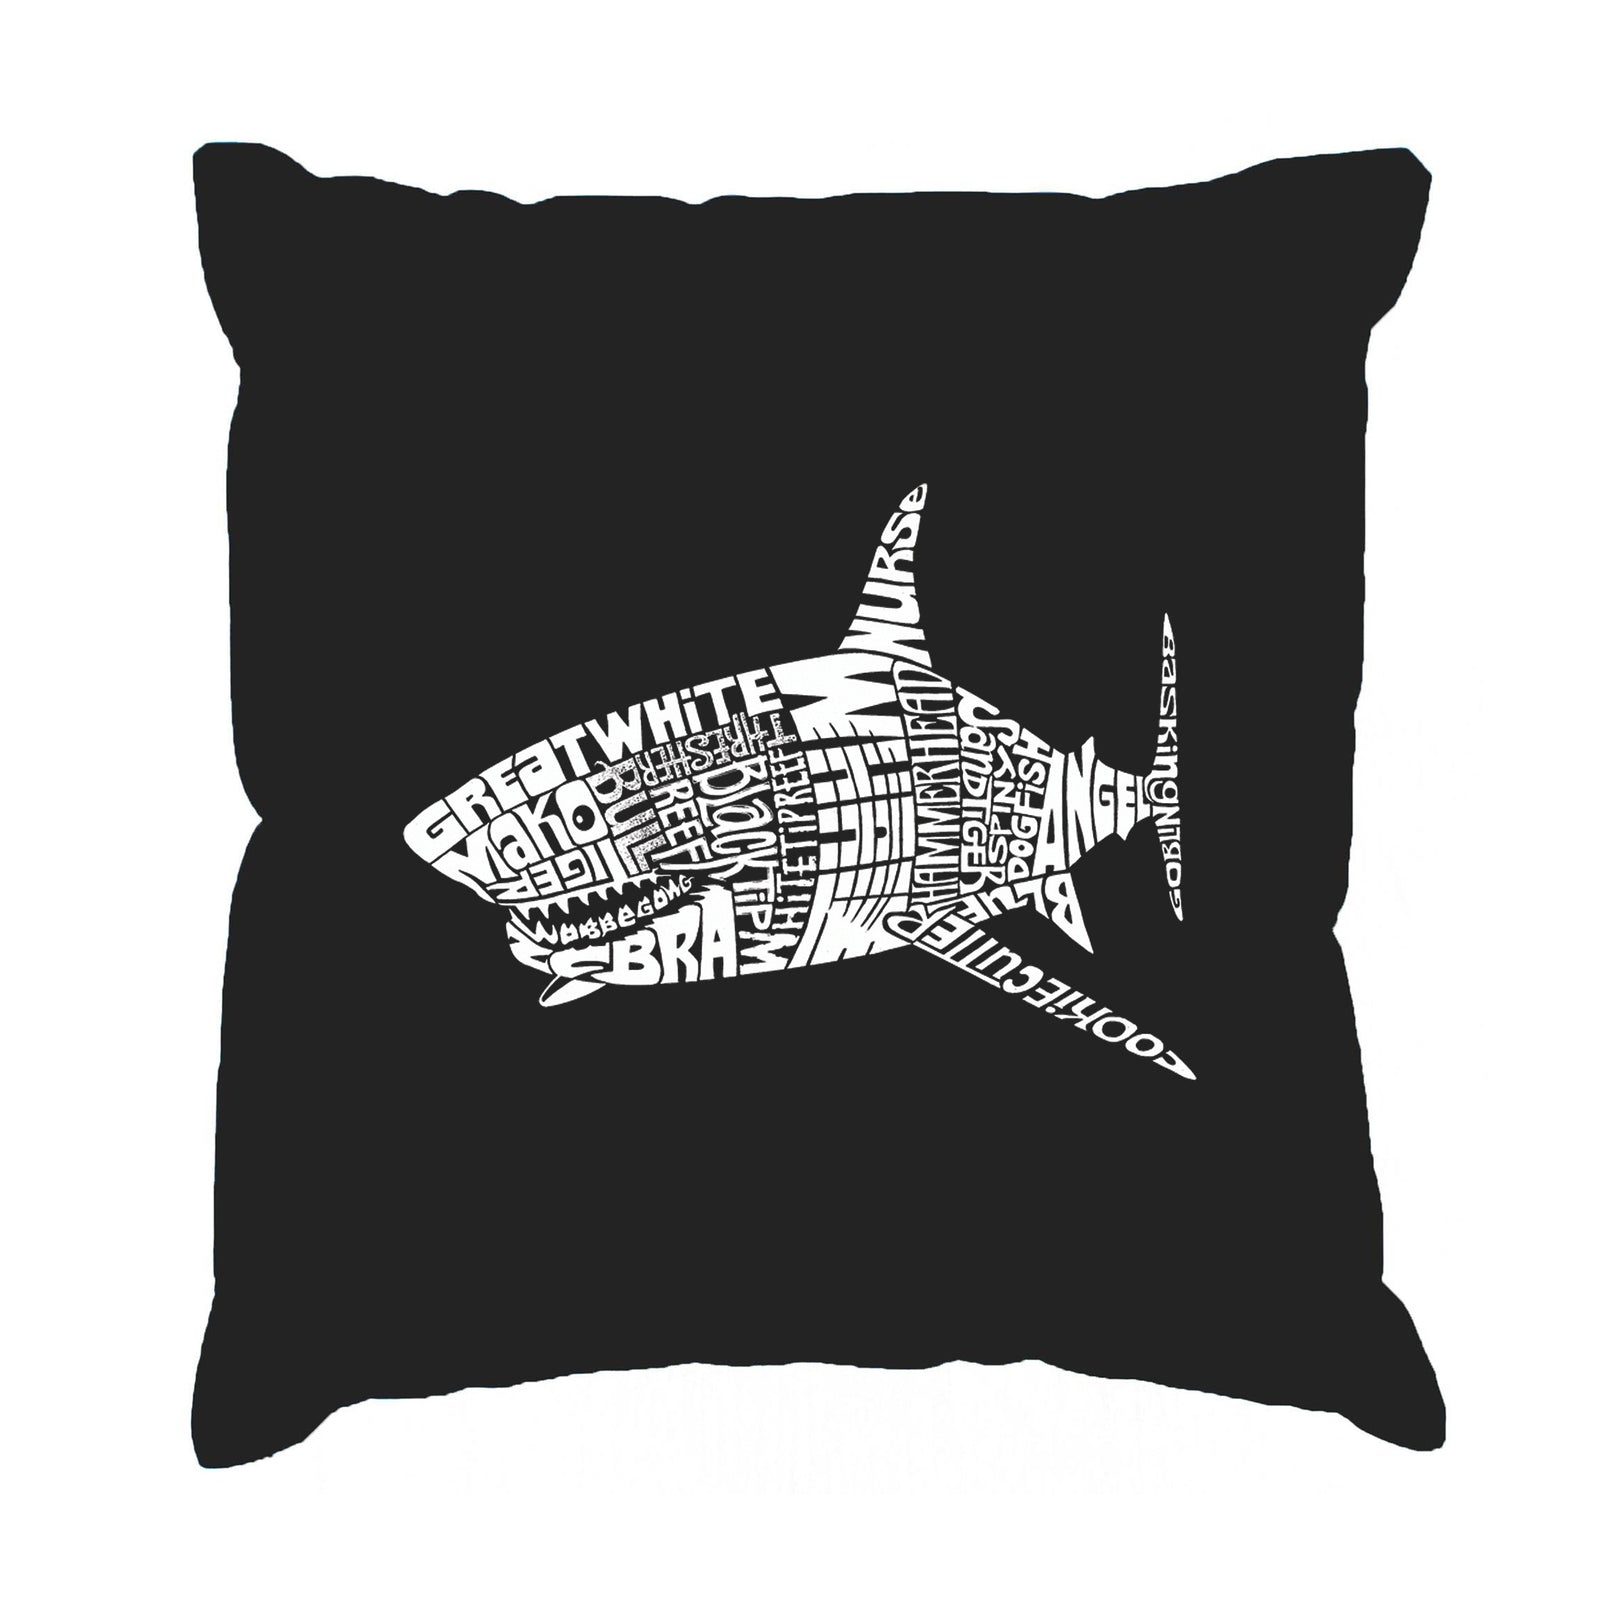 Throw Pillow Cover - SPECIES OF SHARK